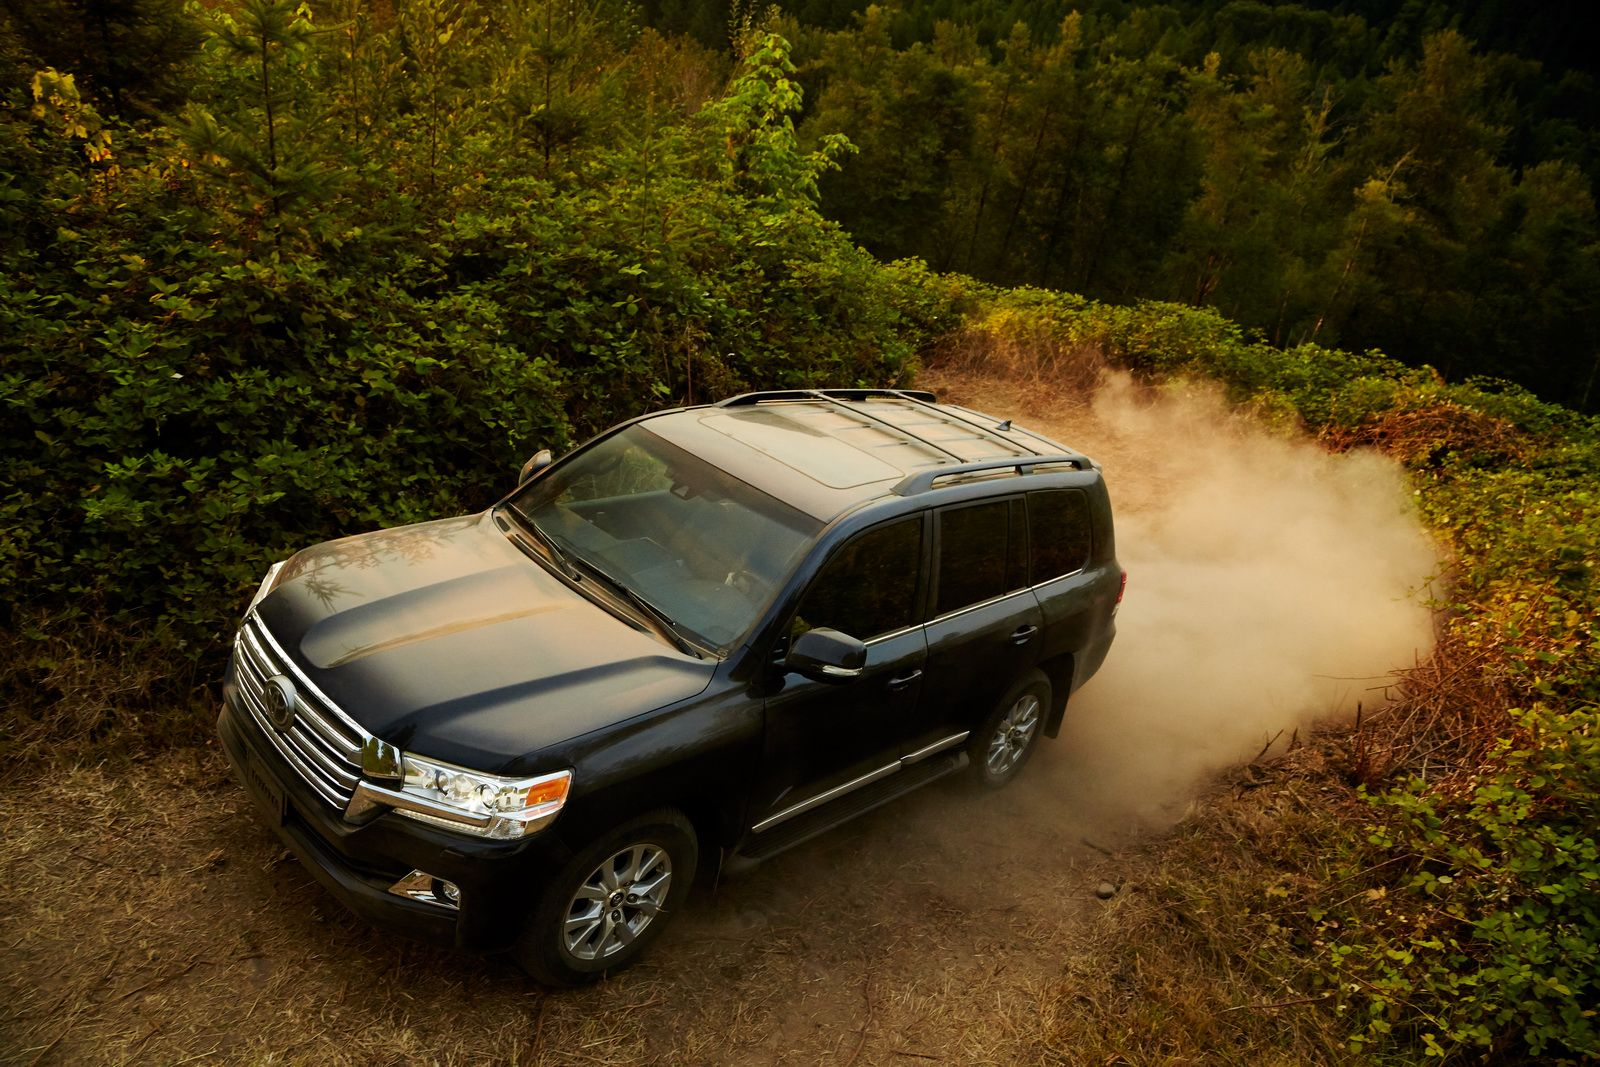 Toyota is going to launch the new suv 2016 toyota land cruiser this new 2016 toyota land cruiser will get more standard features and sophisticated